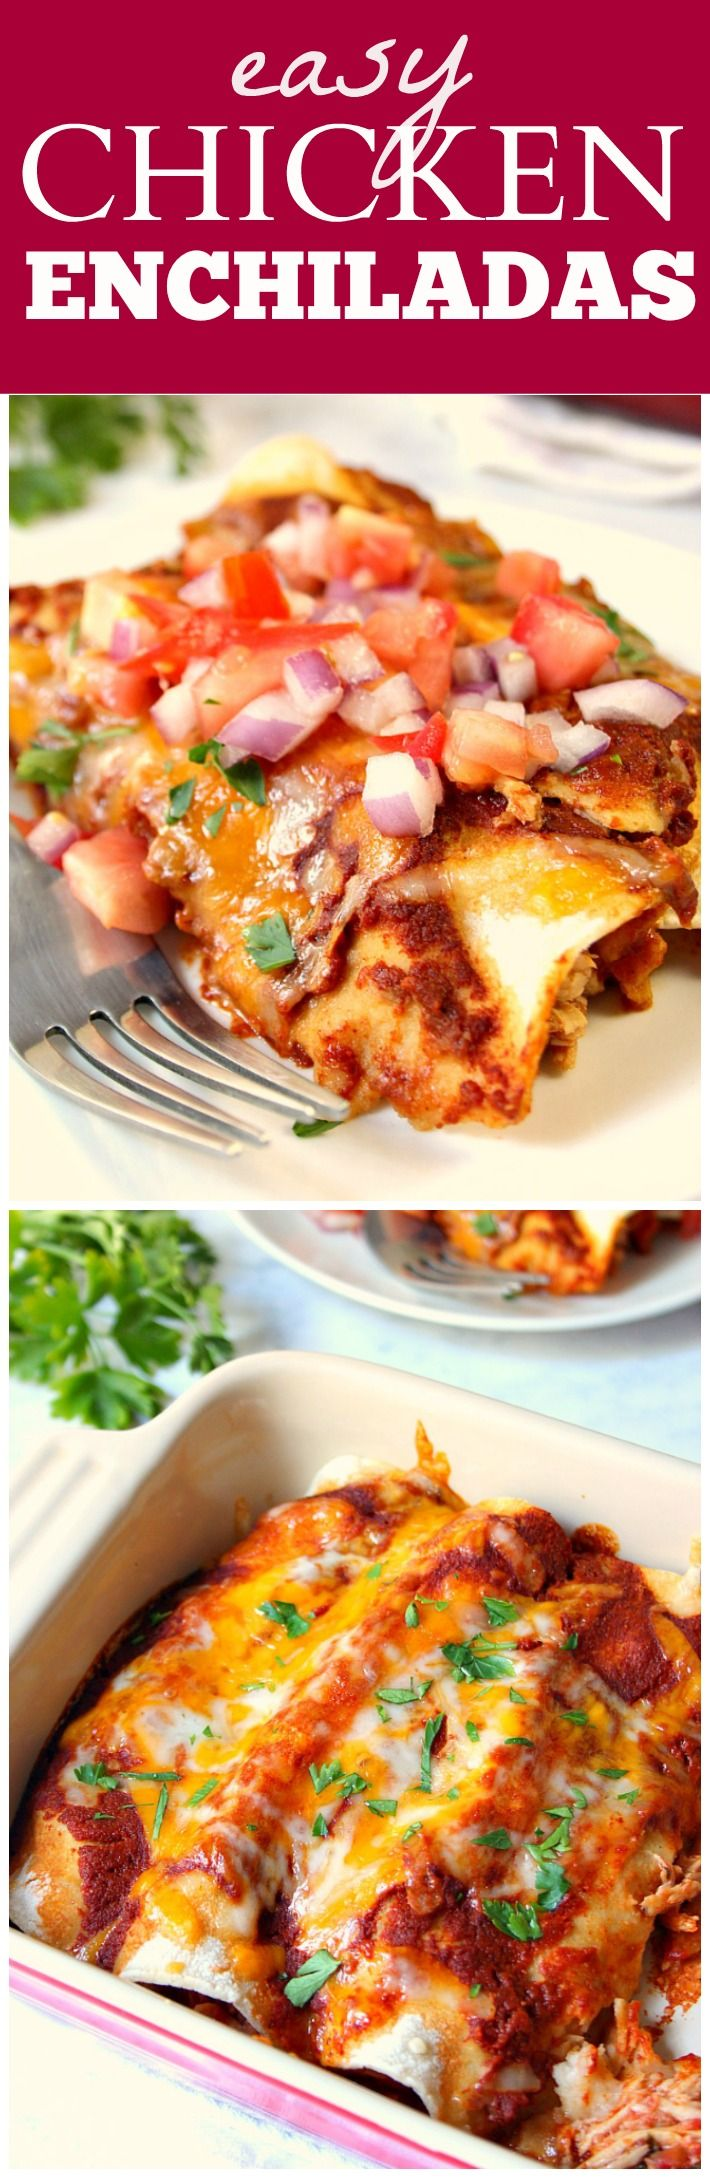 Learn how to make the easiest and BEST chicken enchiladas! Thanks to my enchilada sauce made with just a few ingredients in the blender and my Mexican chicken cooked in slow cooker, this recipe is super easy! Also, learn my trick to preventing the corn tortillas from breaking.